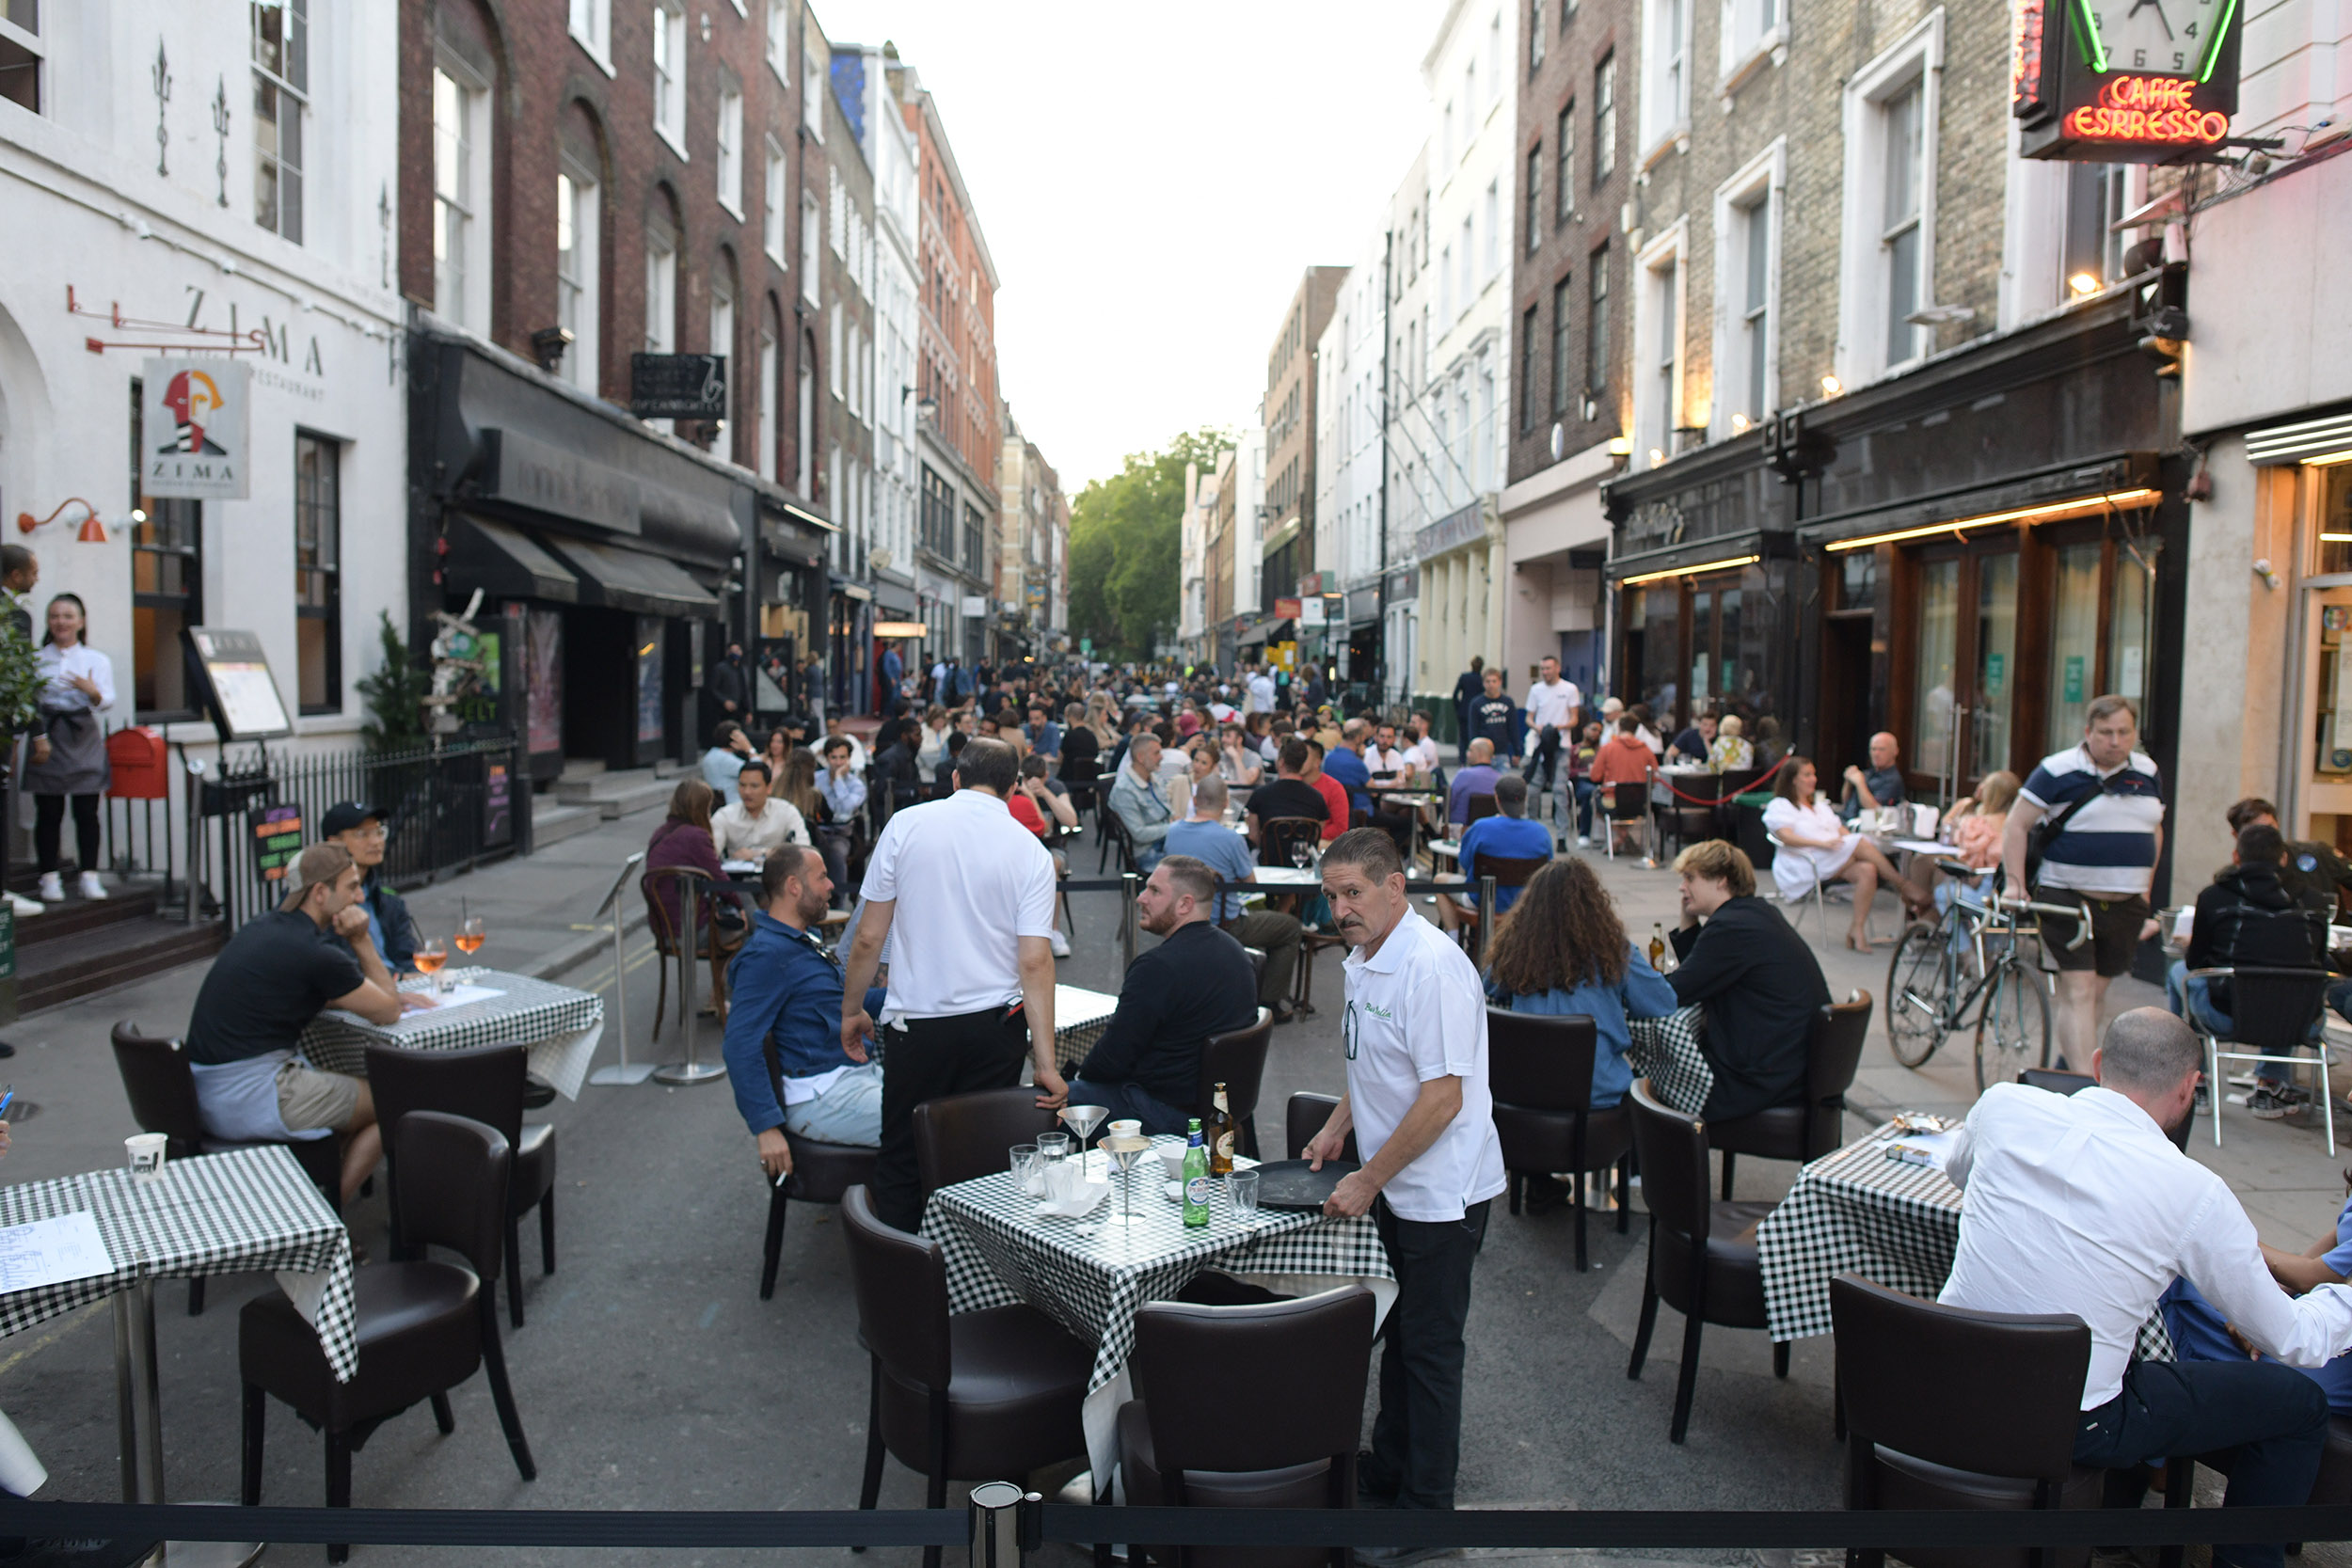 People socialize in Soho, central London, after the lifting of further coronavirus lockdown restrictions in England.